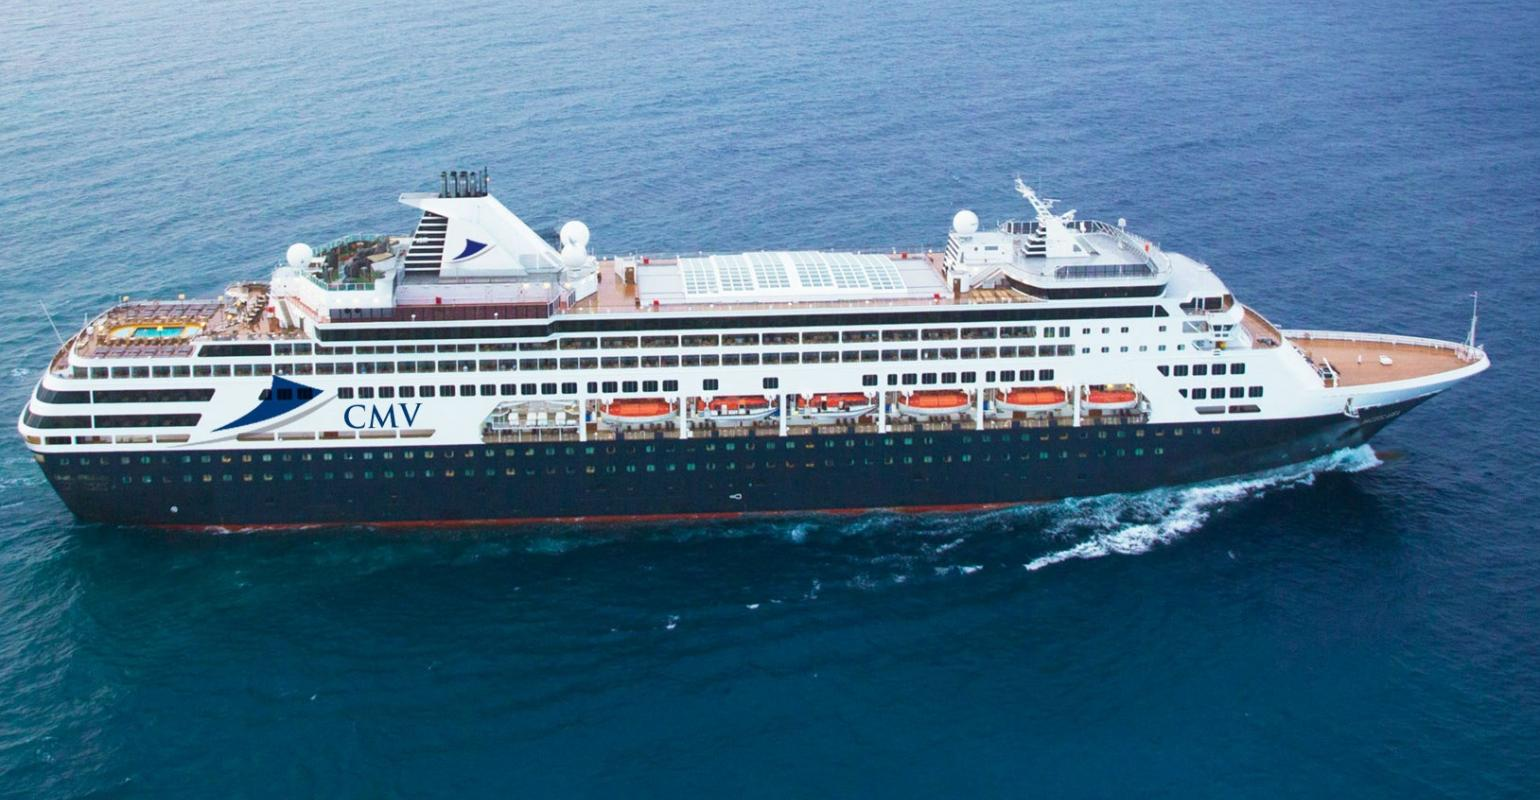 Vasco de Gamma of Cruise and Maritime Voyages Sold at Auction to Mystic Cruises.